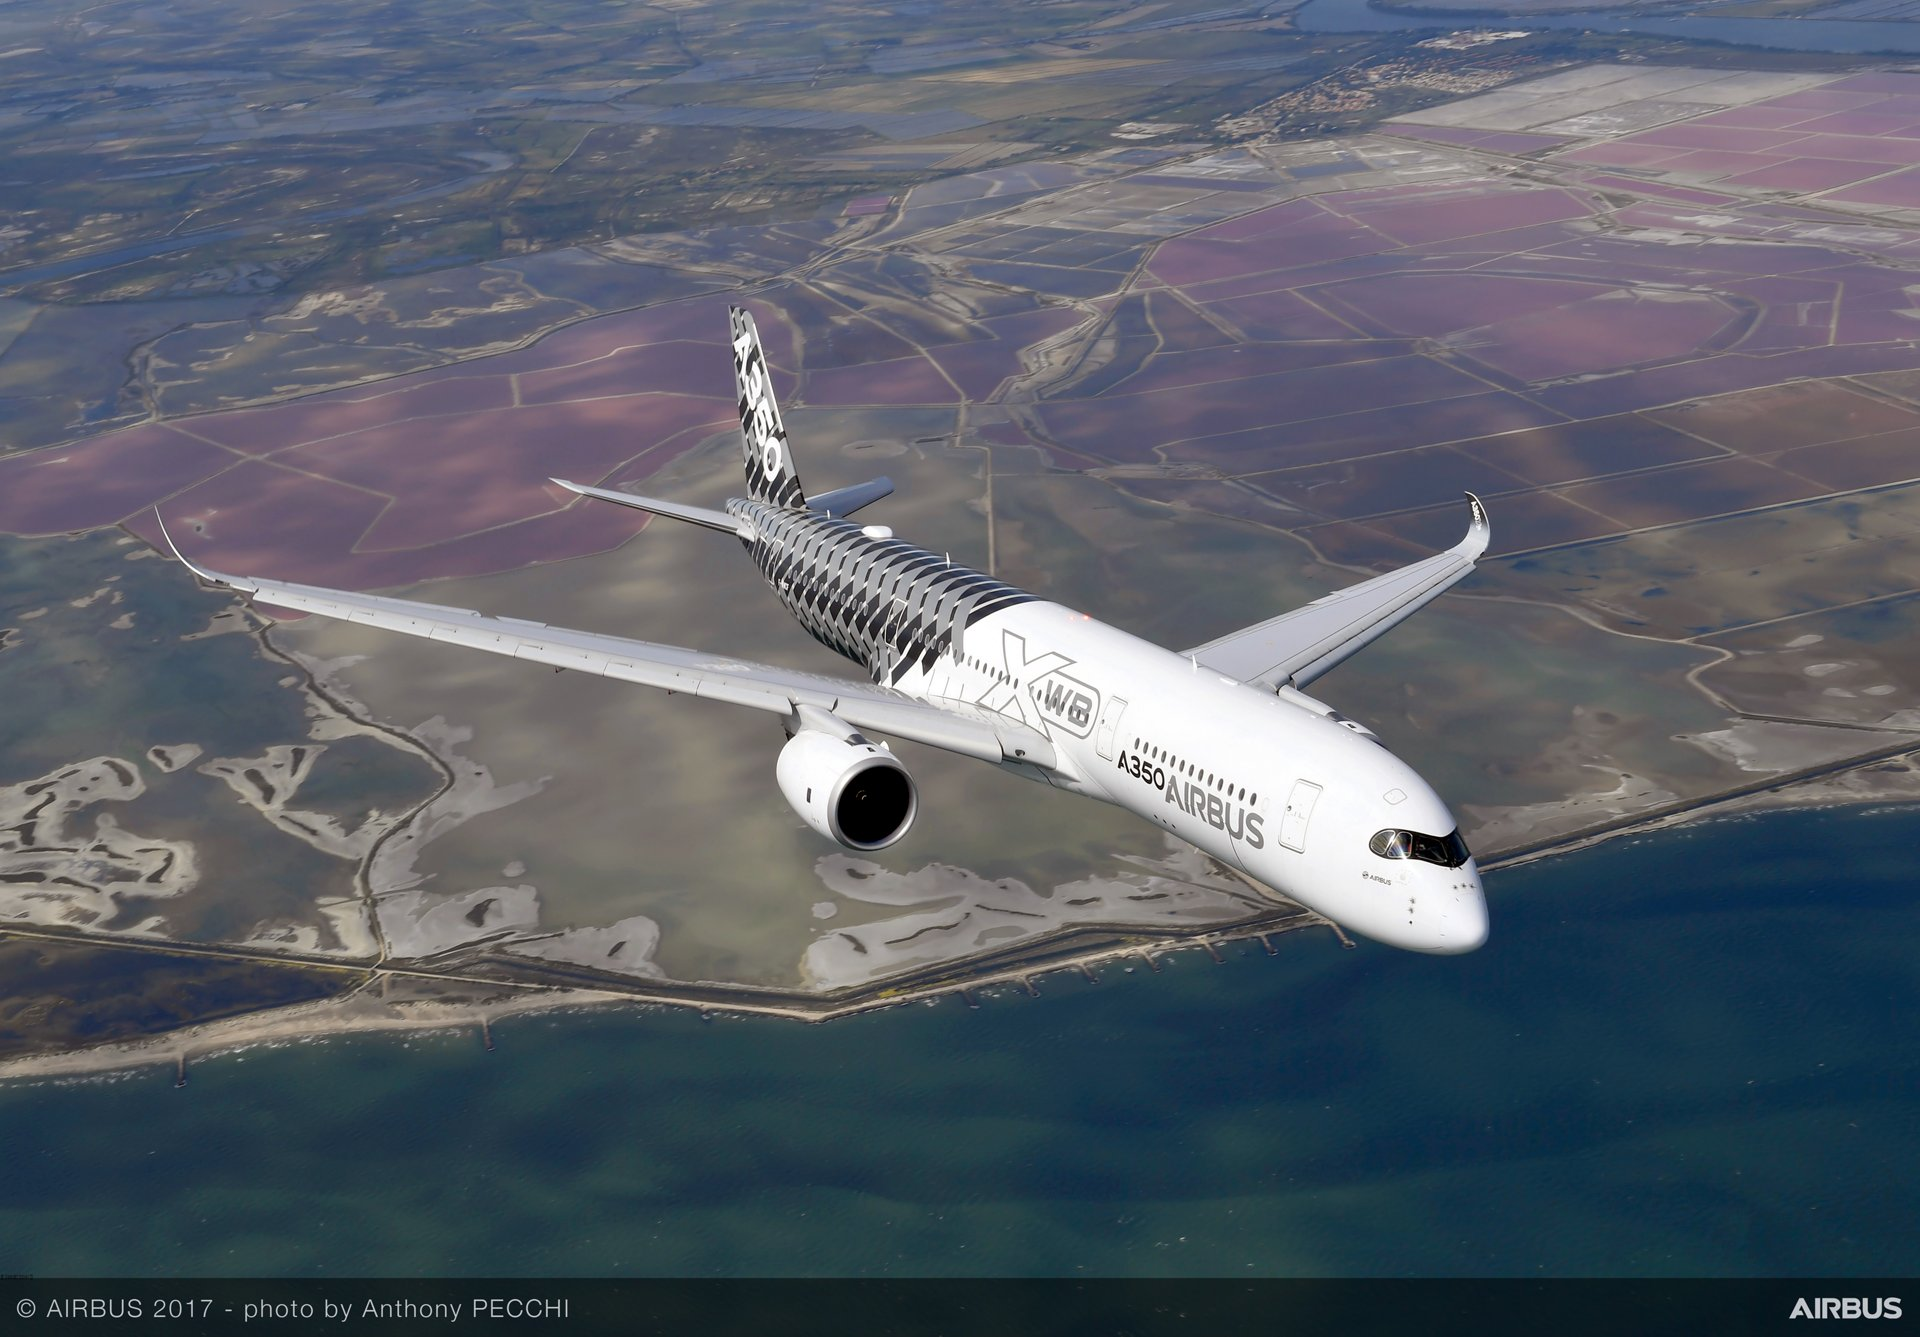 A350 XWB In flight